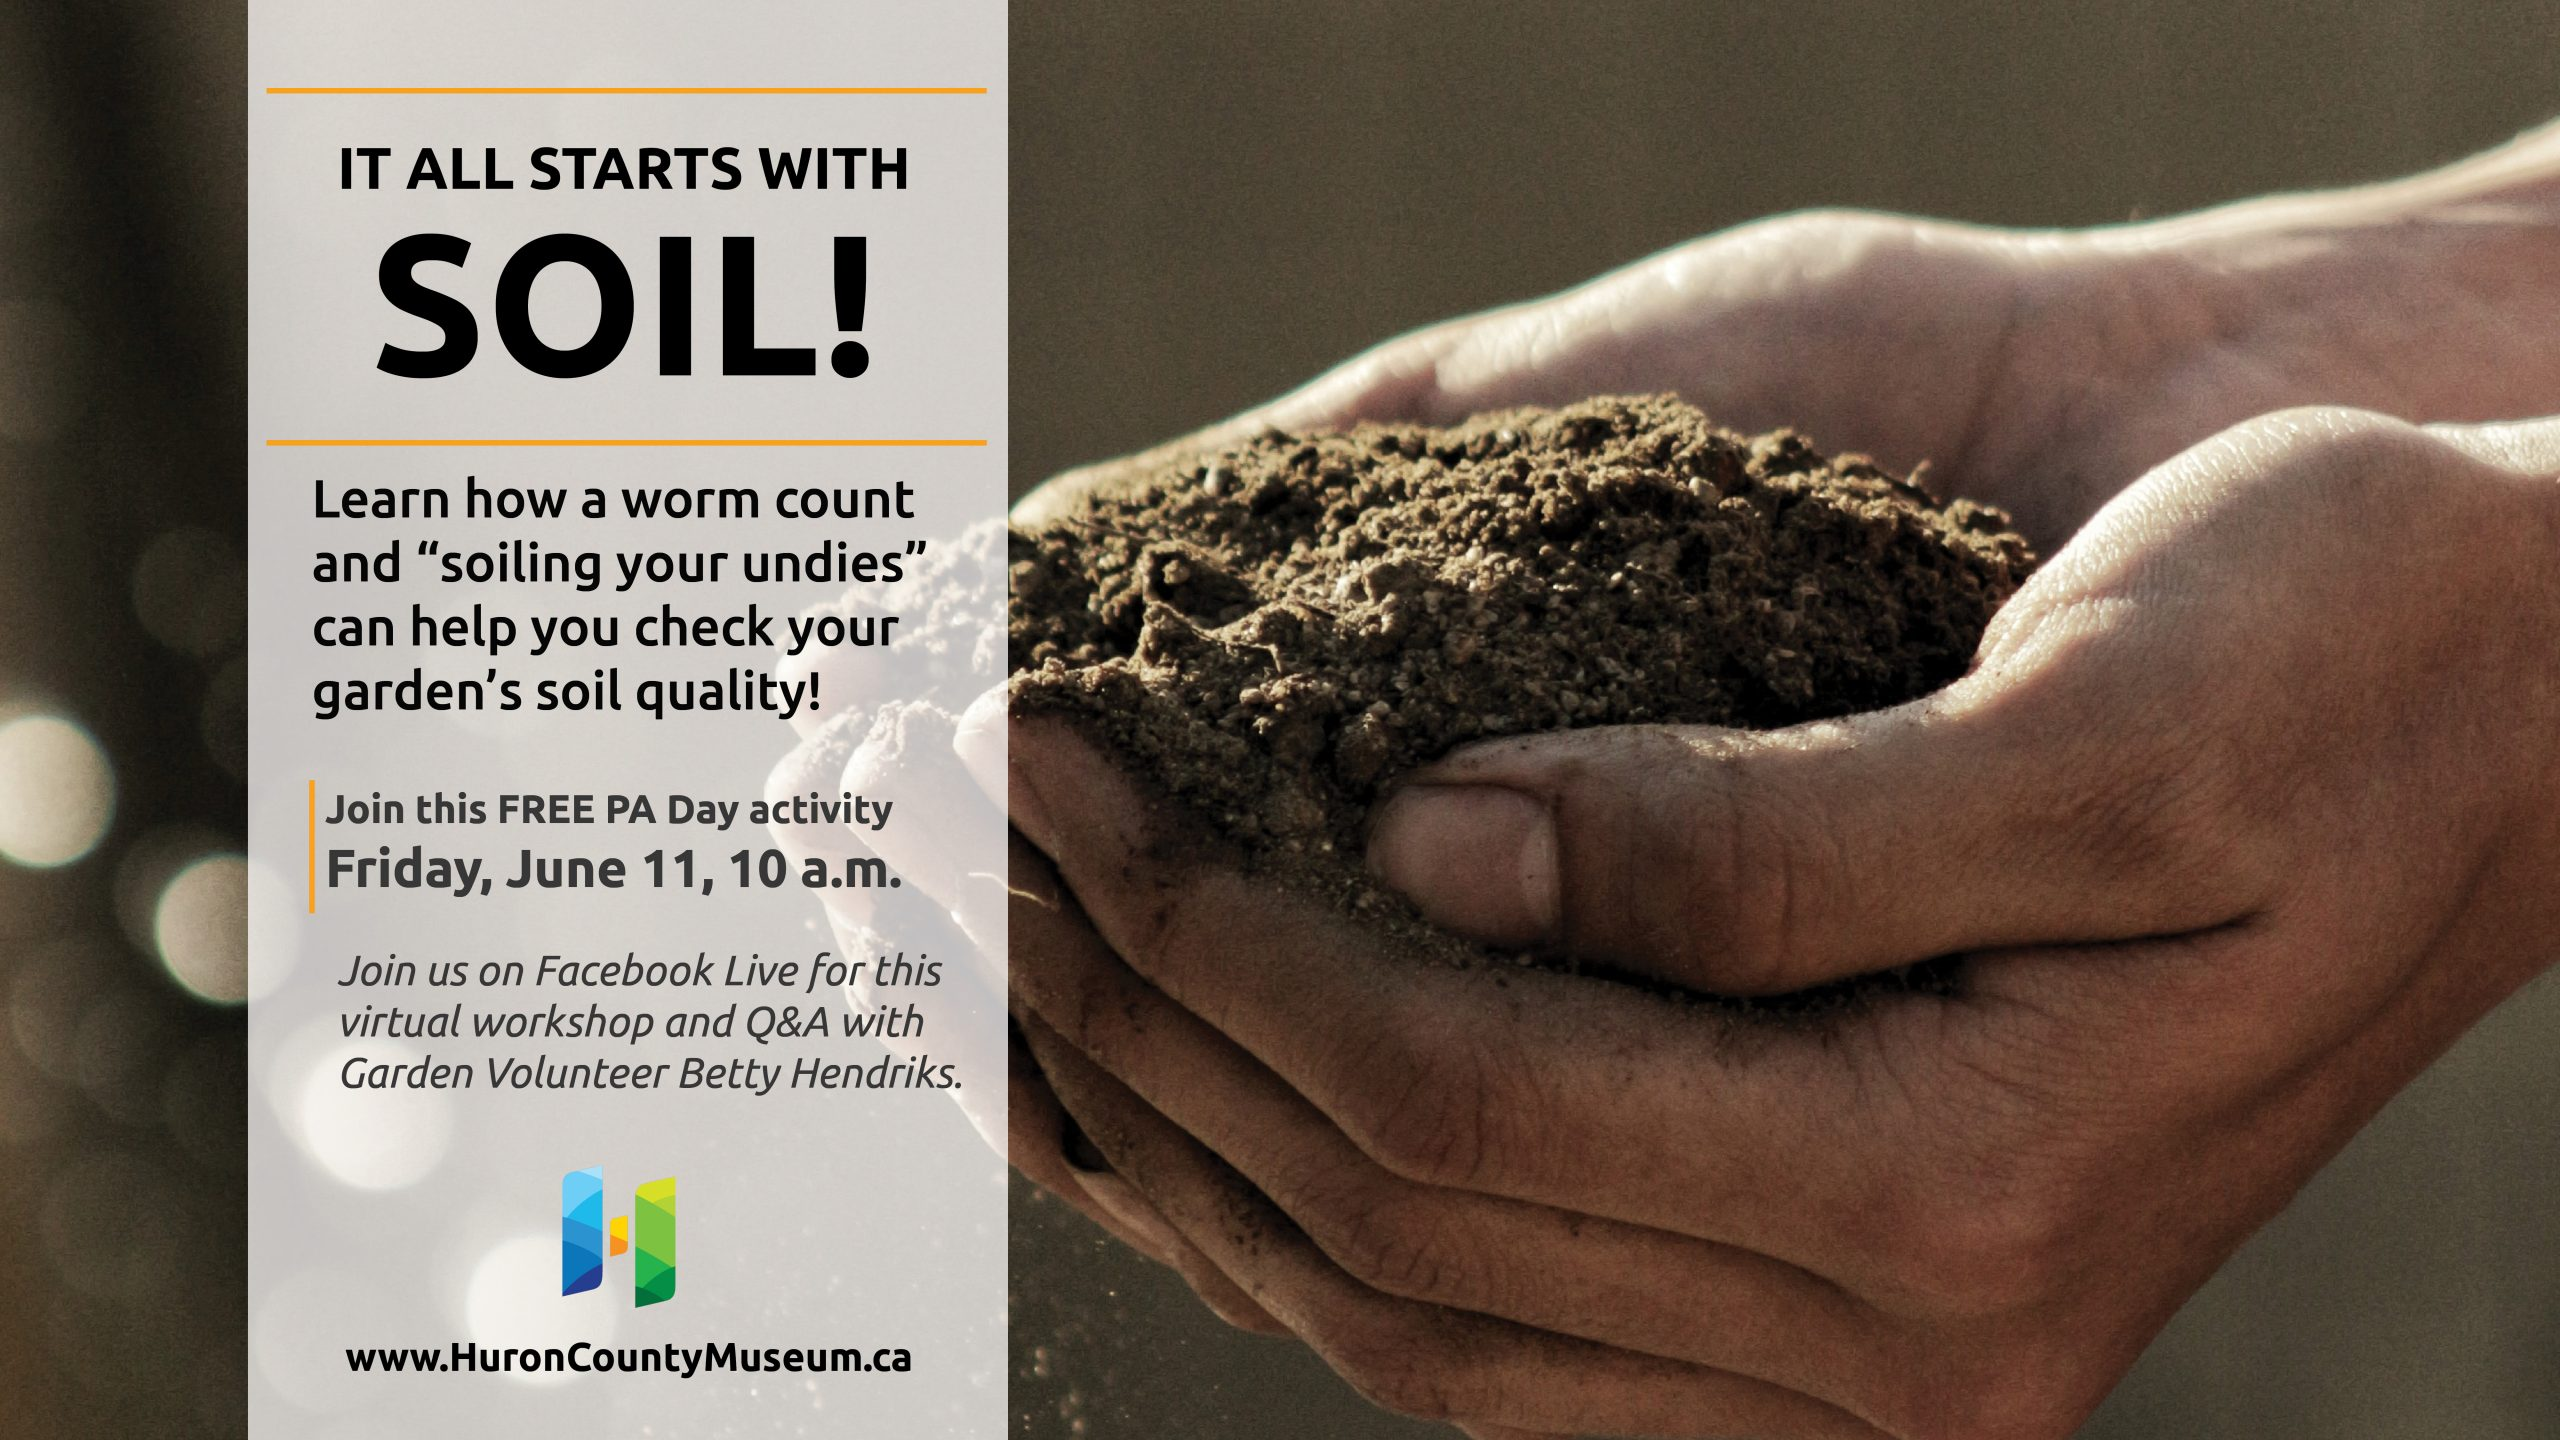 It all starts with soil free workshop